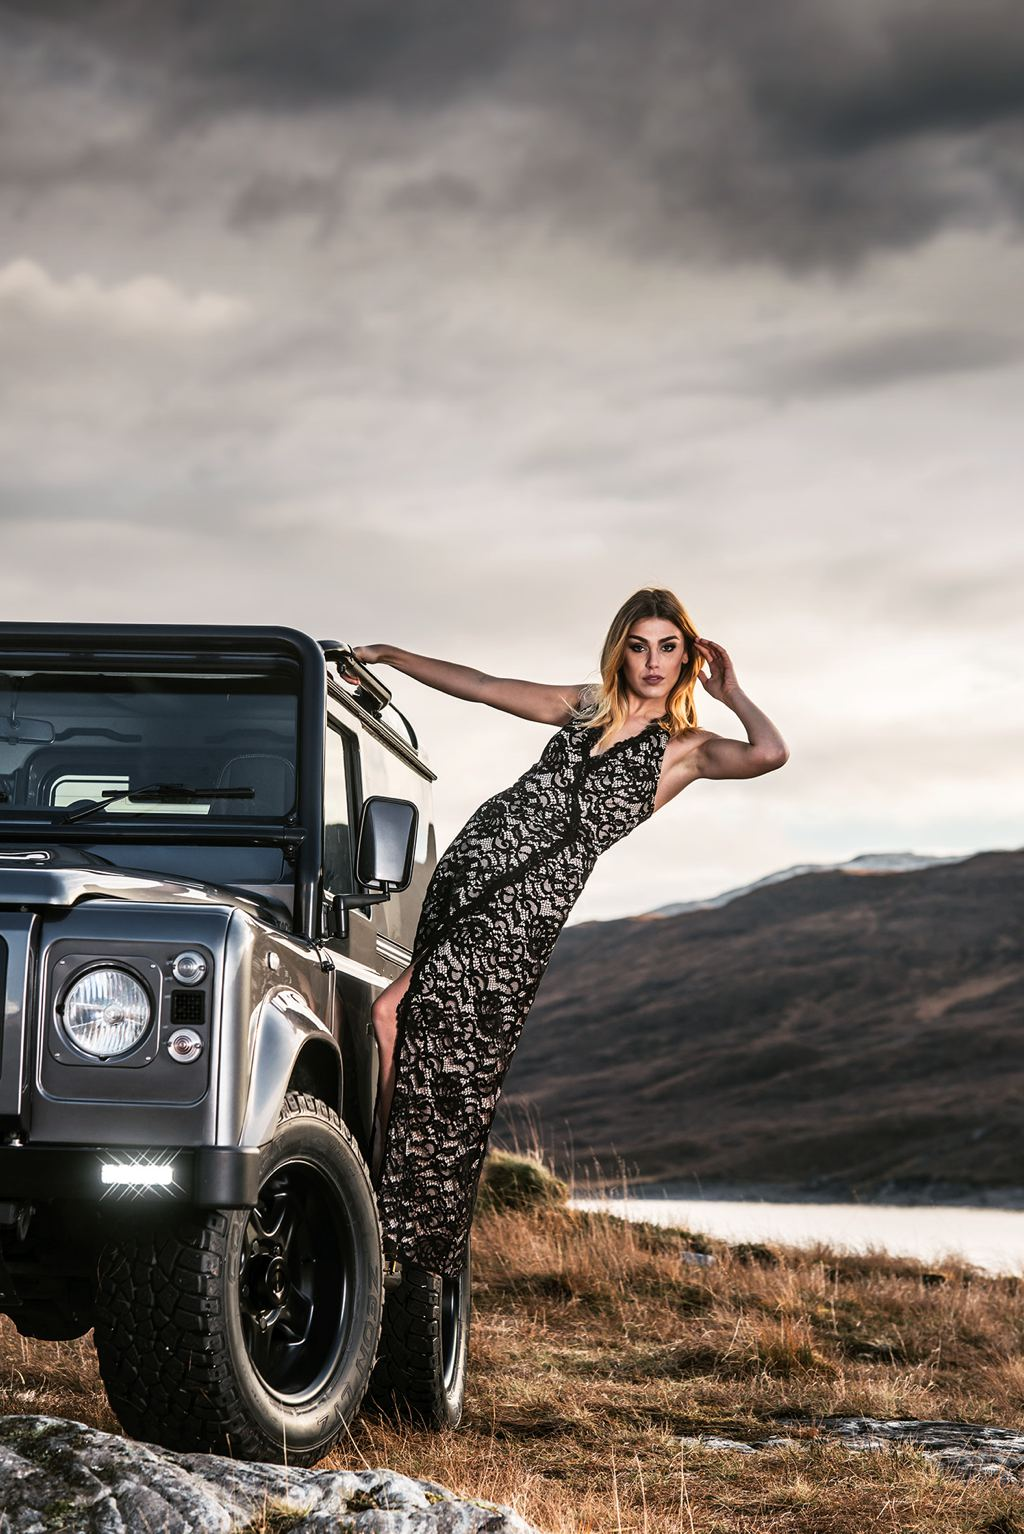 Twisted Defender Highlands 4 175x175 at Gallery: Twisted Defender in ...